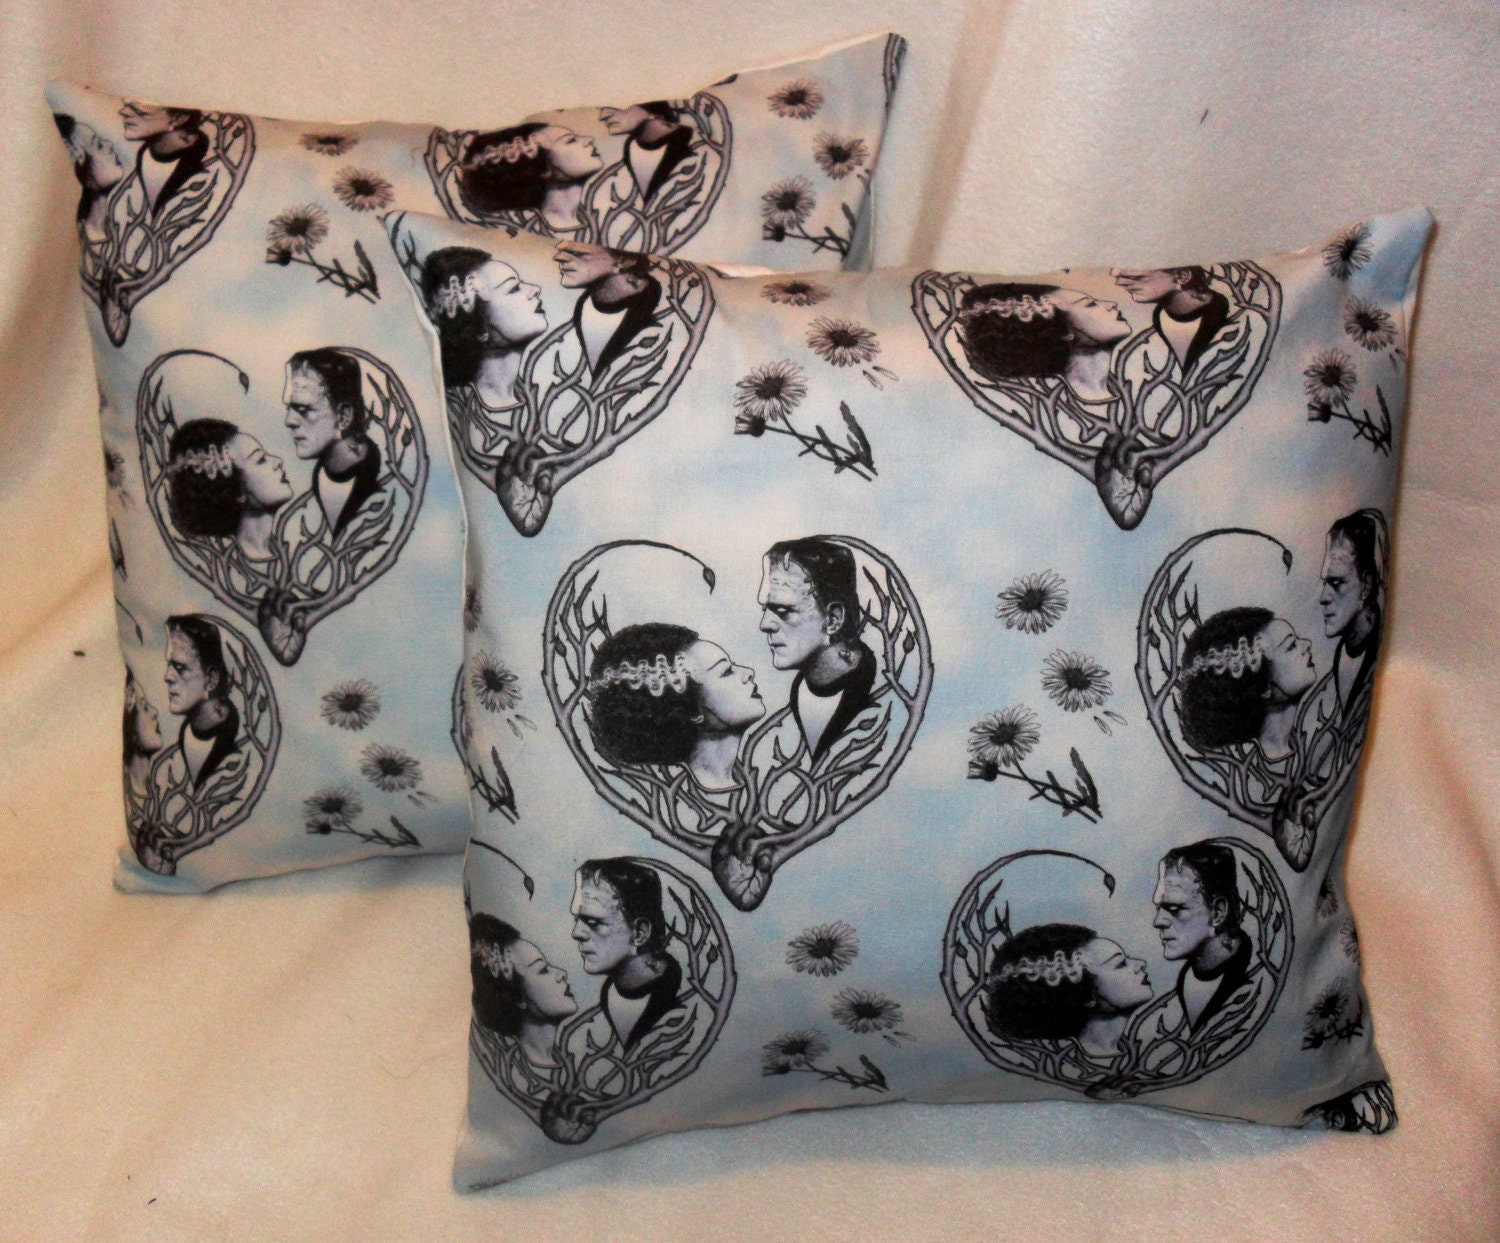 Frankenstein and Bride pillow covers